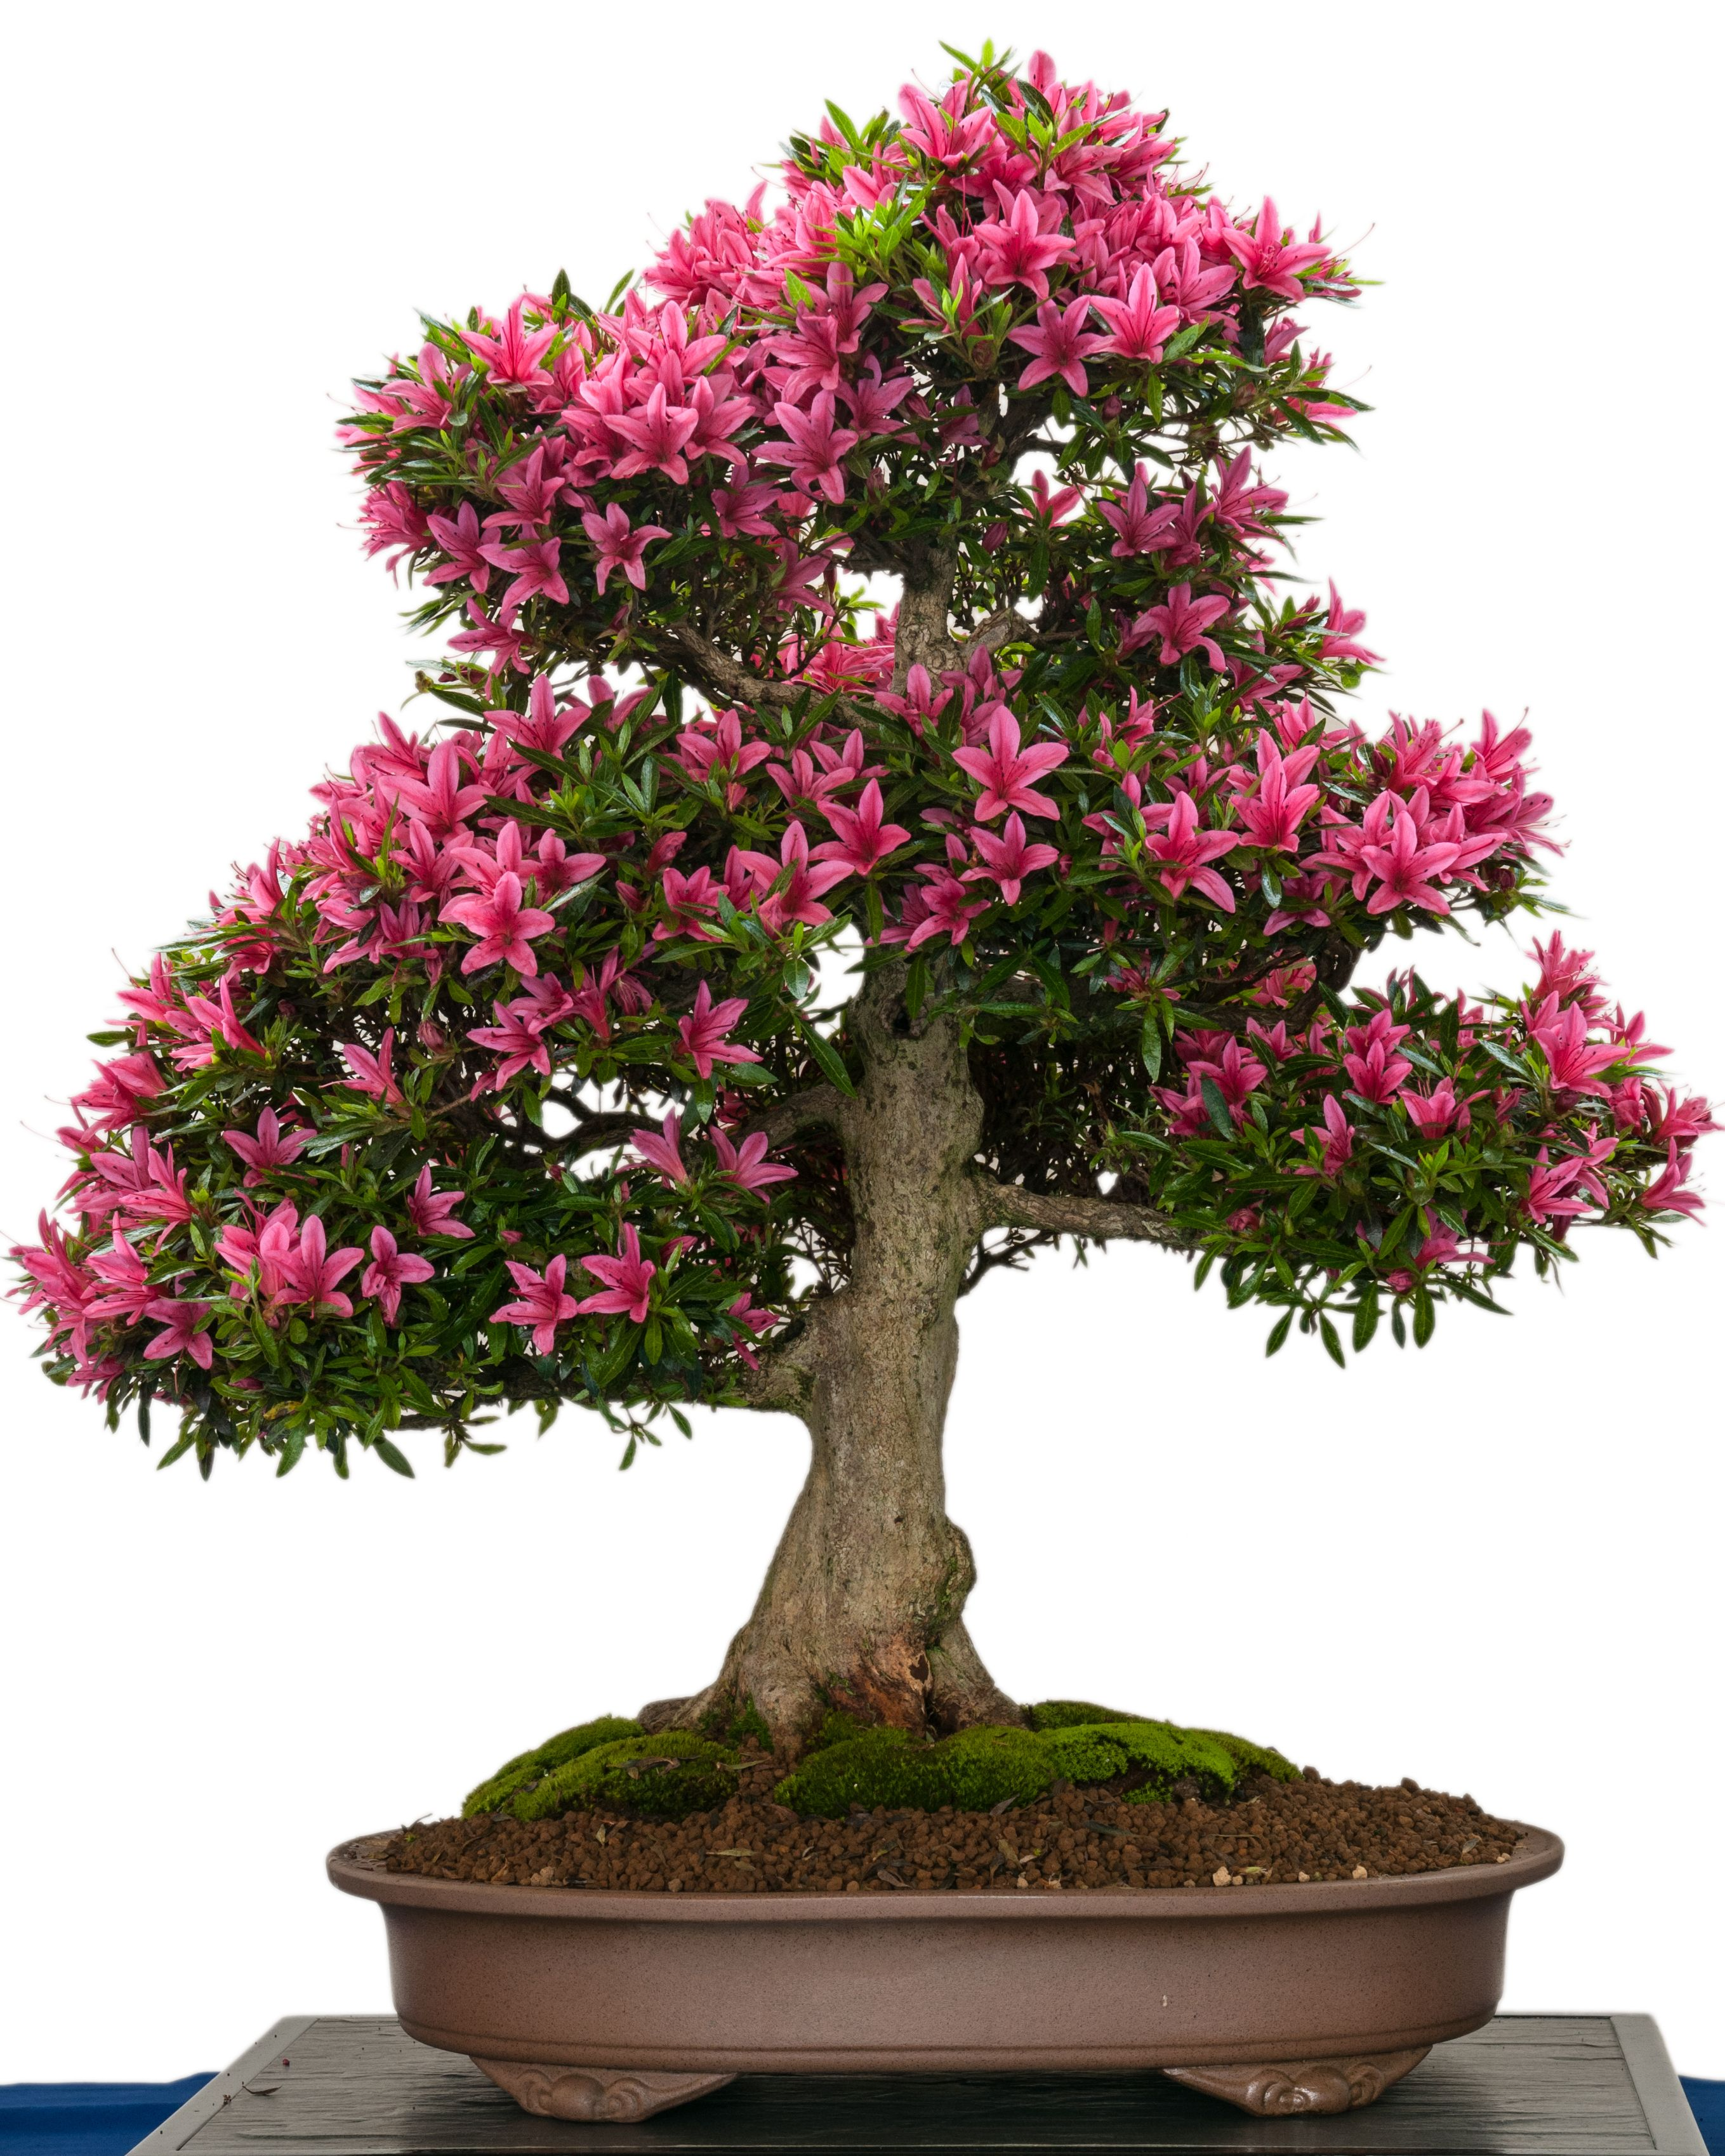 Azalea How To Take Care Of A Bonsai Tree